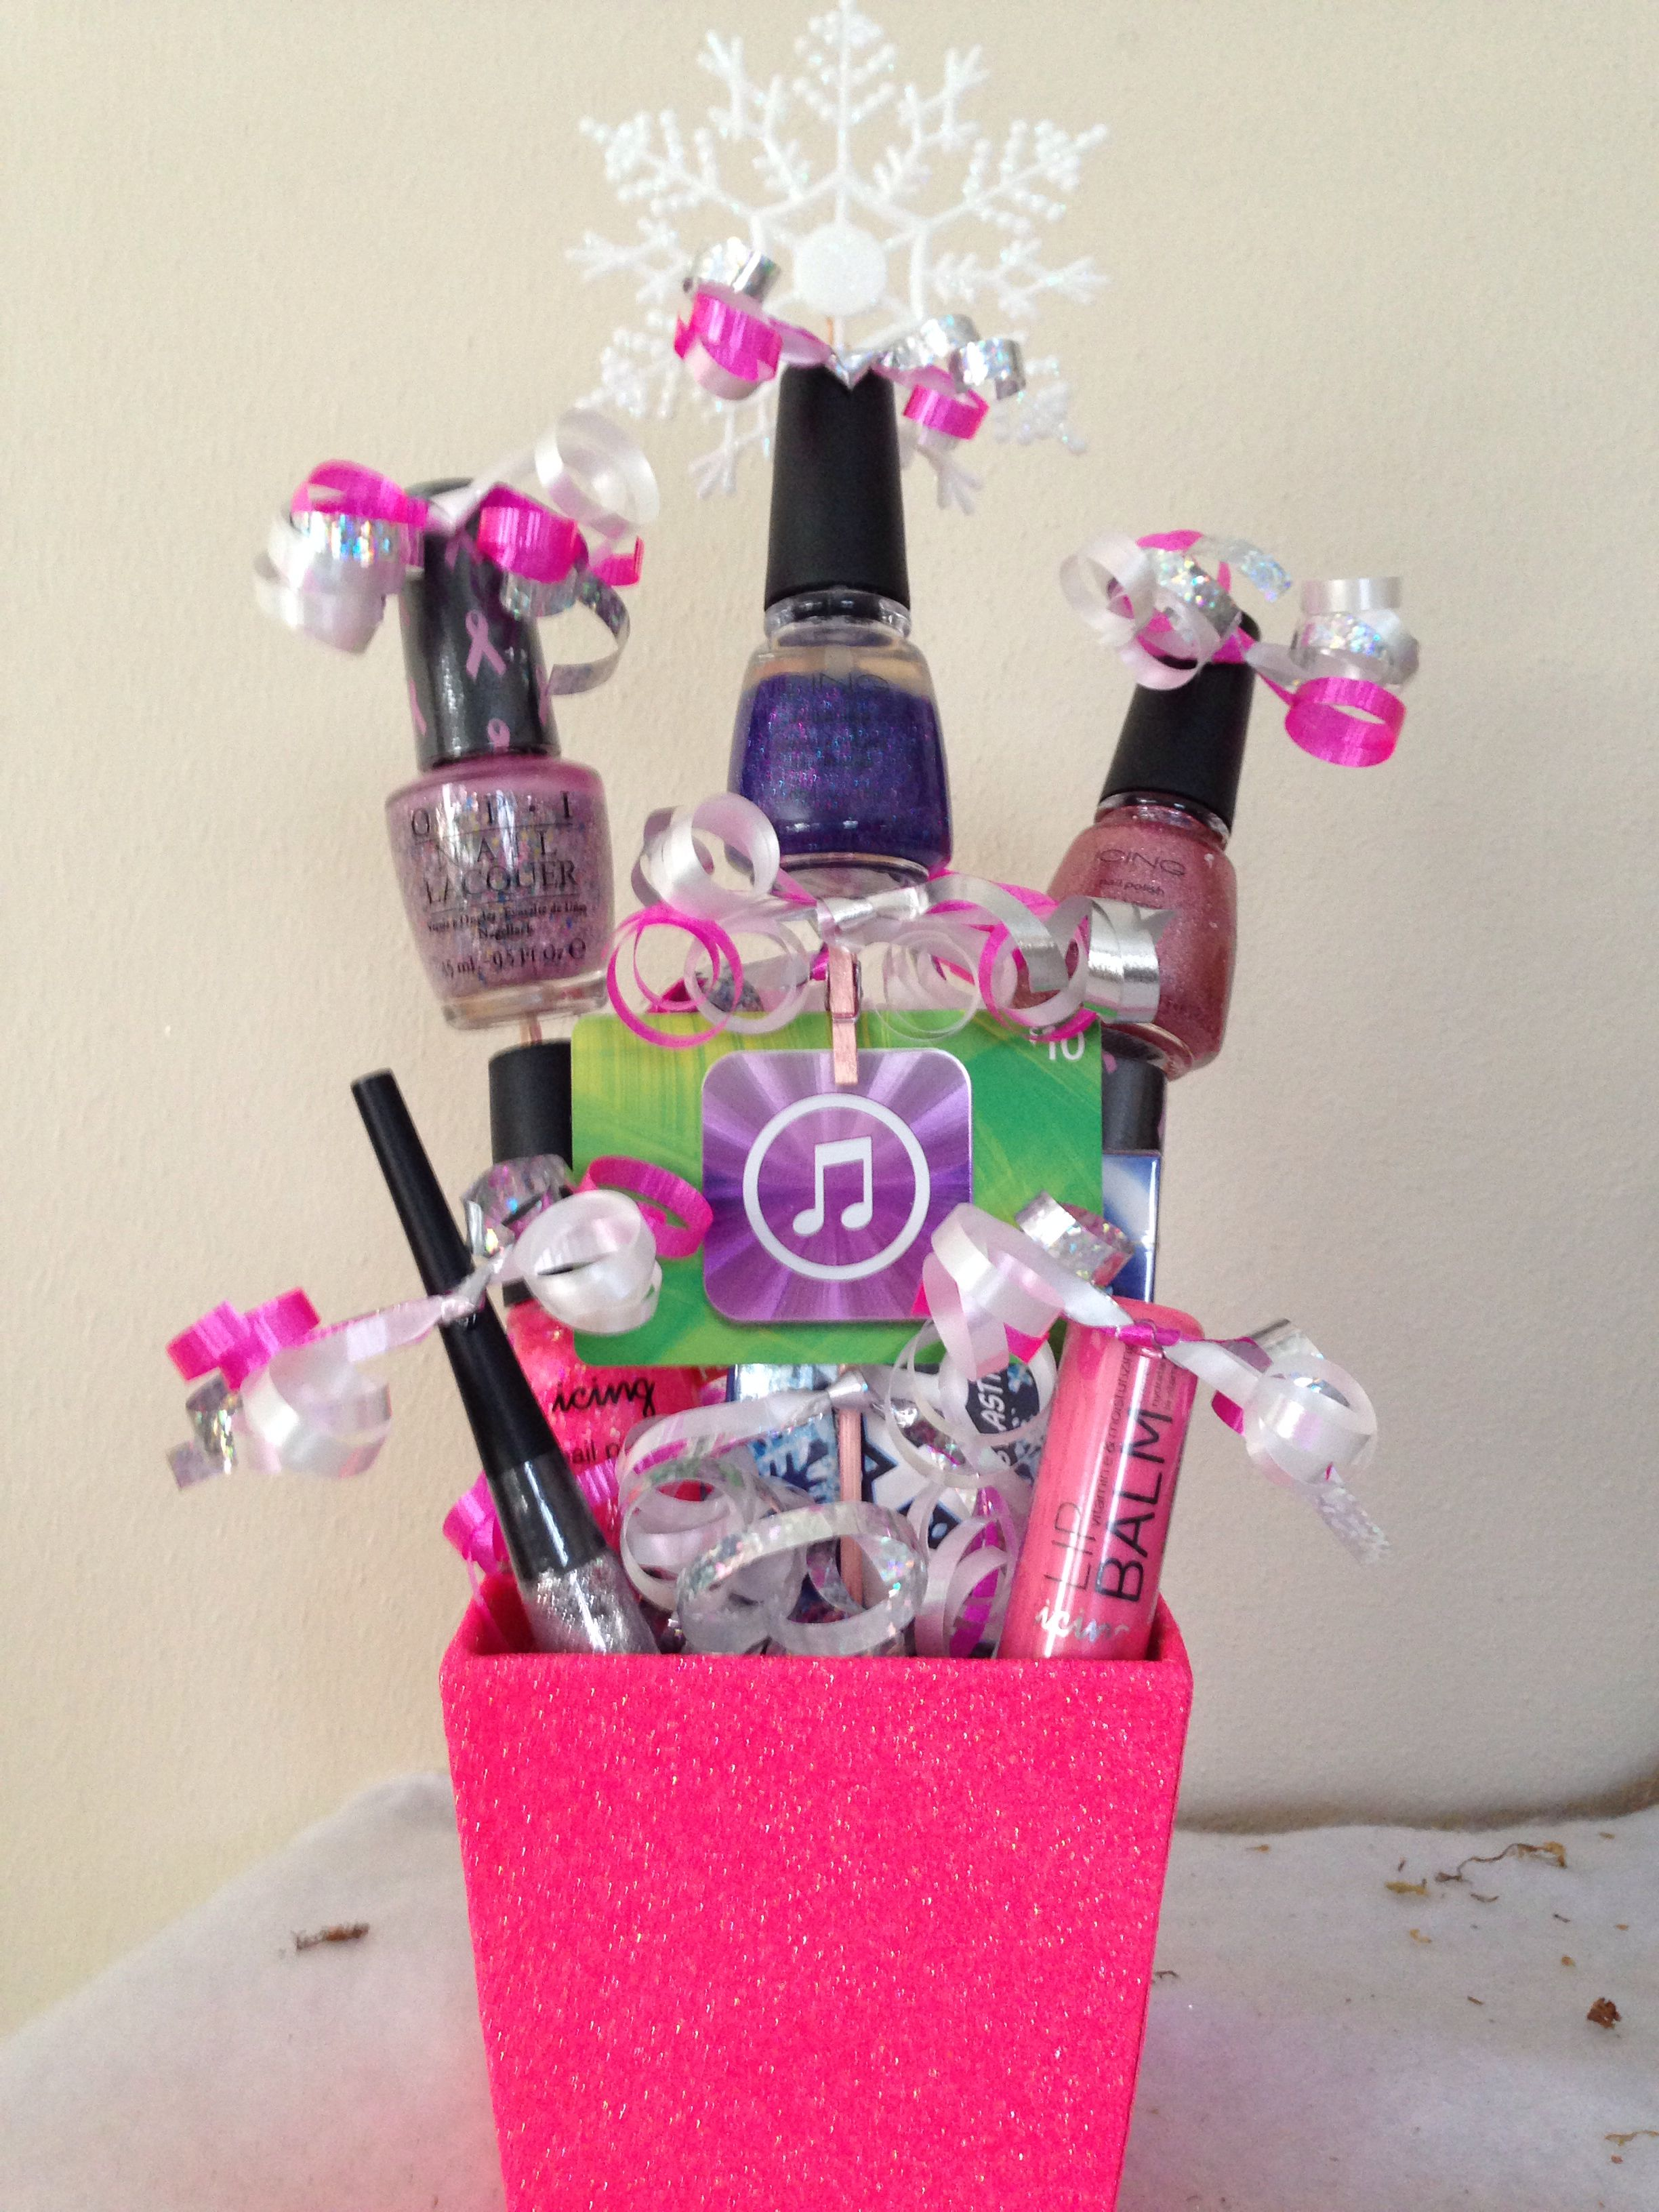 Pin on Clever Crafter Tips